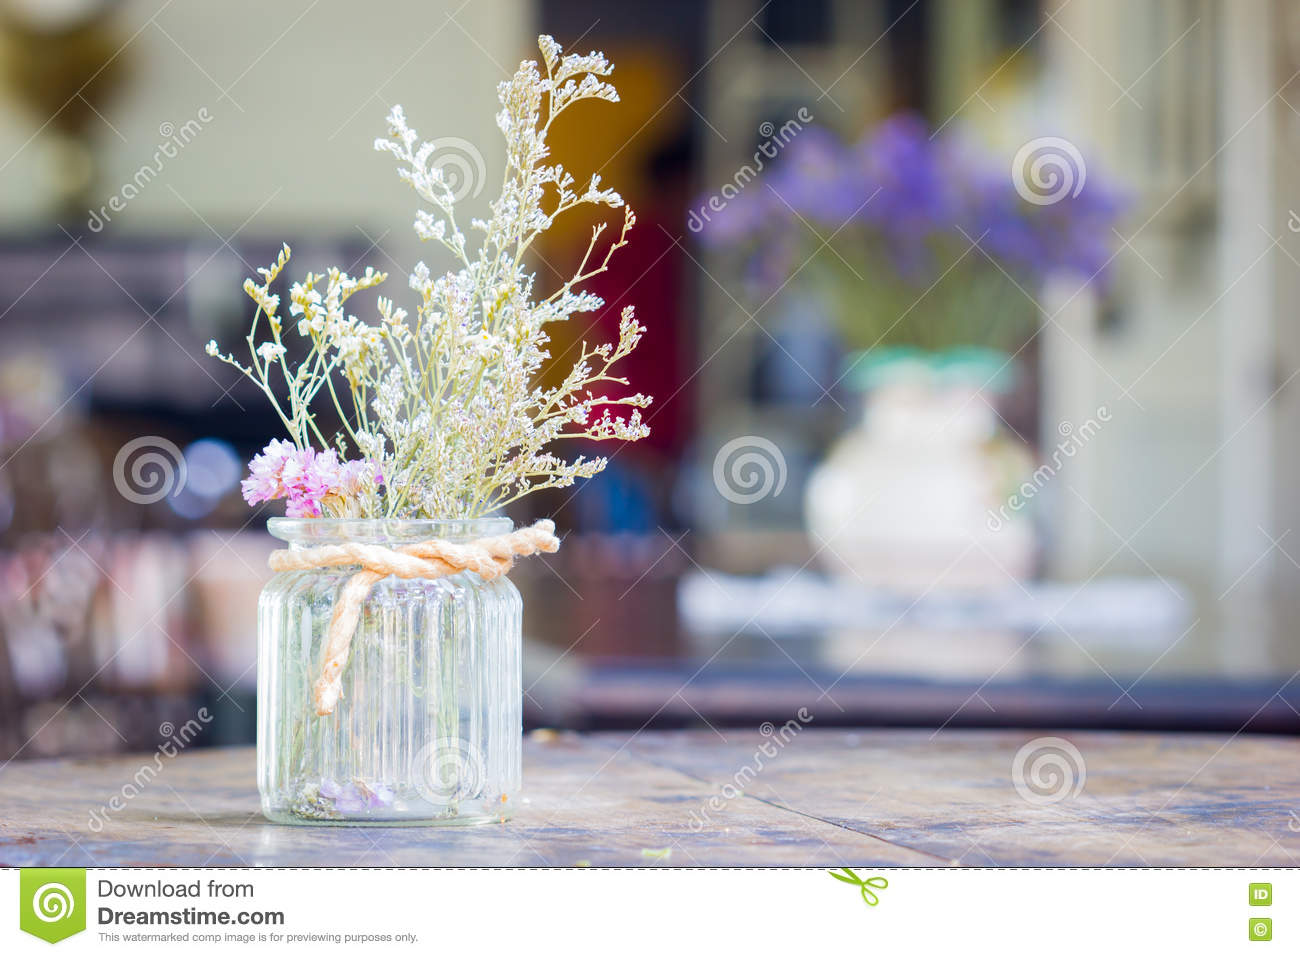 dry flowers in glass vase with rope on blurred background, copyspace